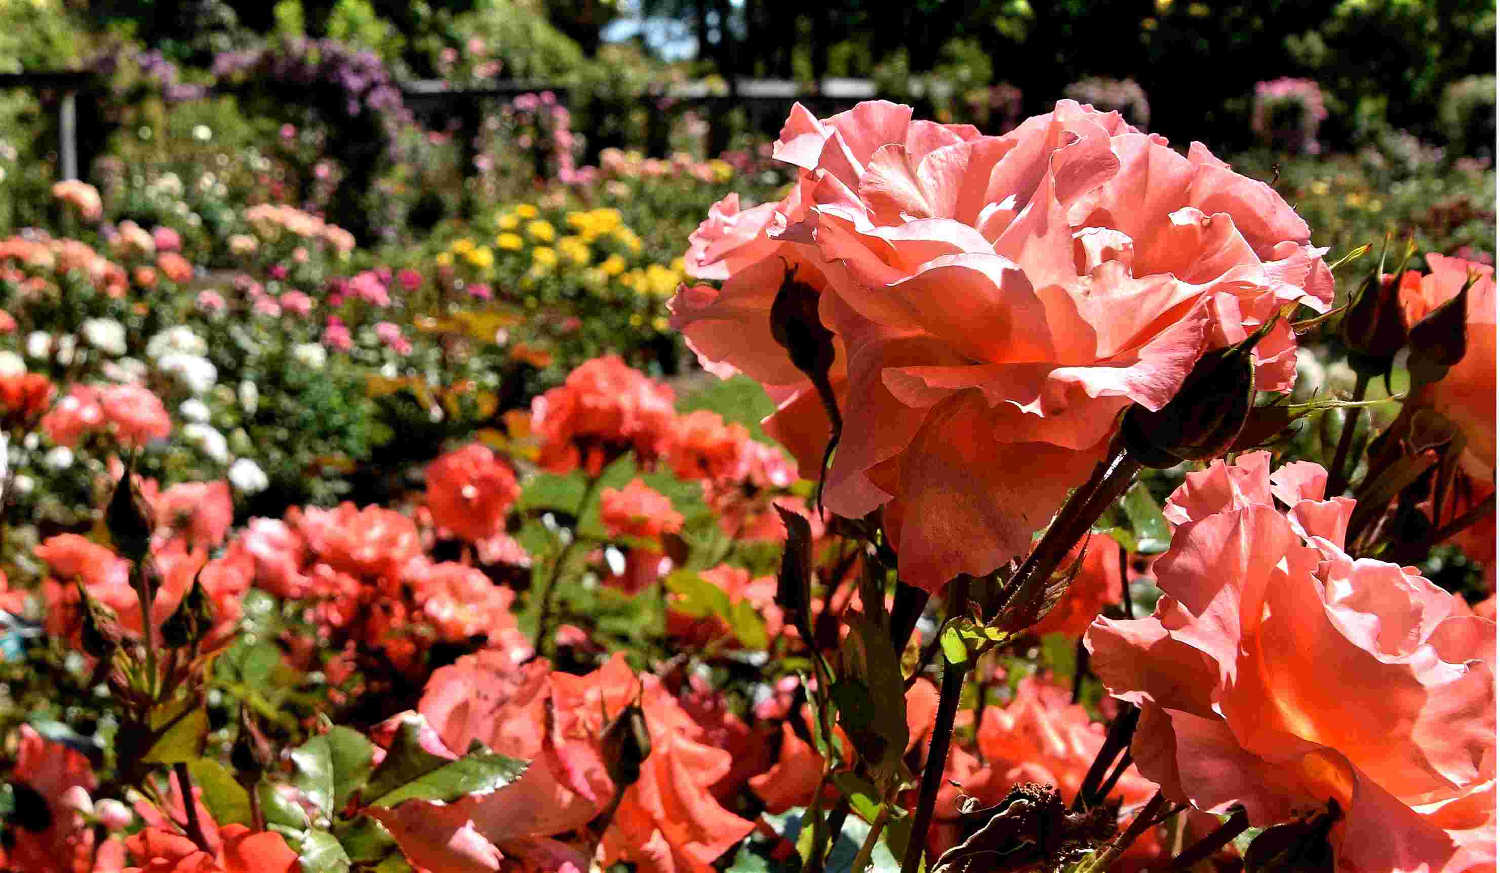 Roses in full glory Queens Park Invercargill, Southland, New Zealand